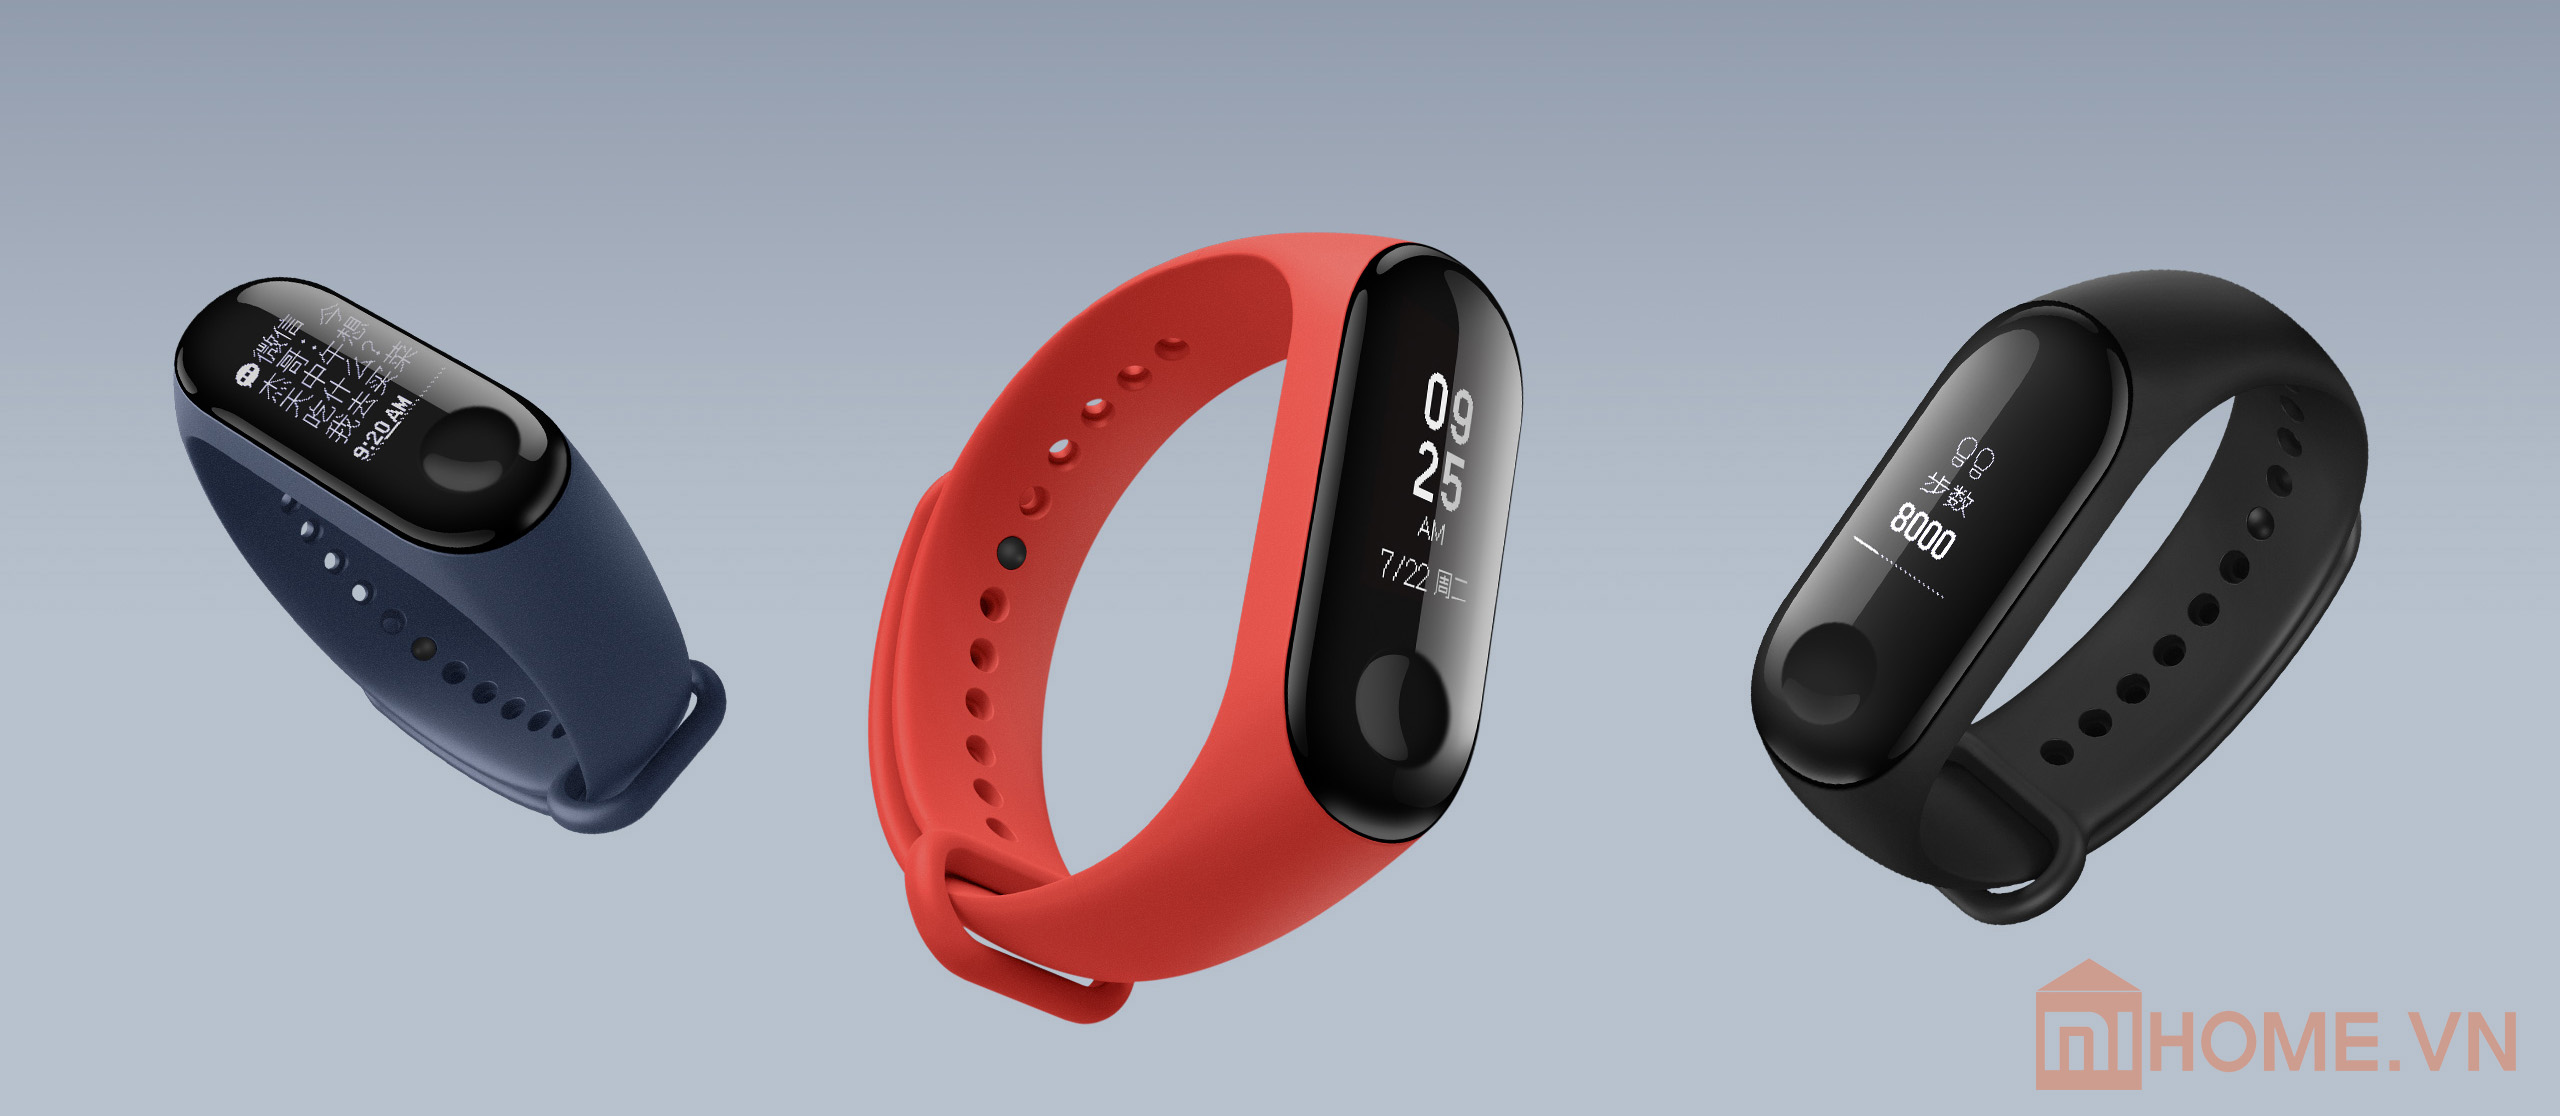 vong deo tay miband3 2